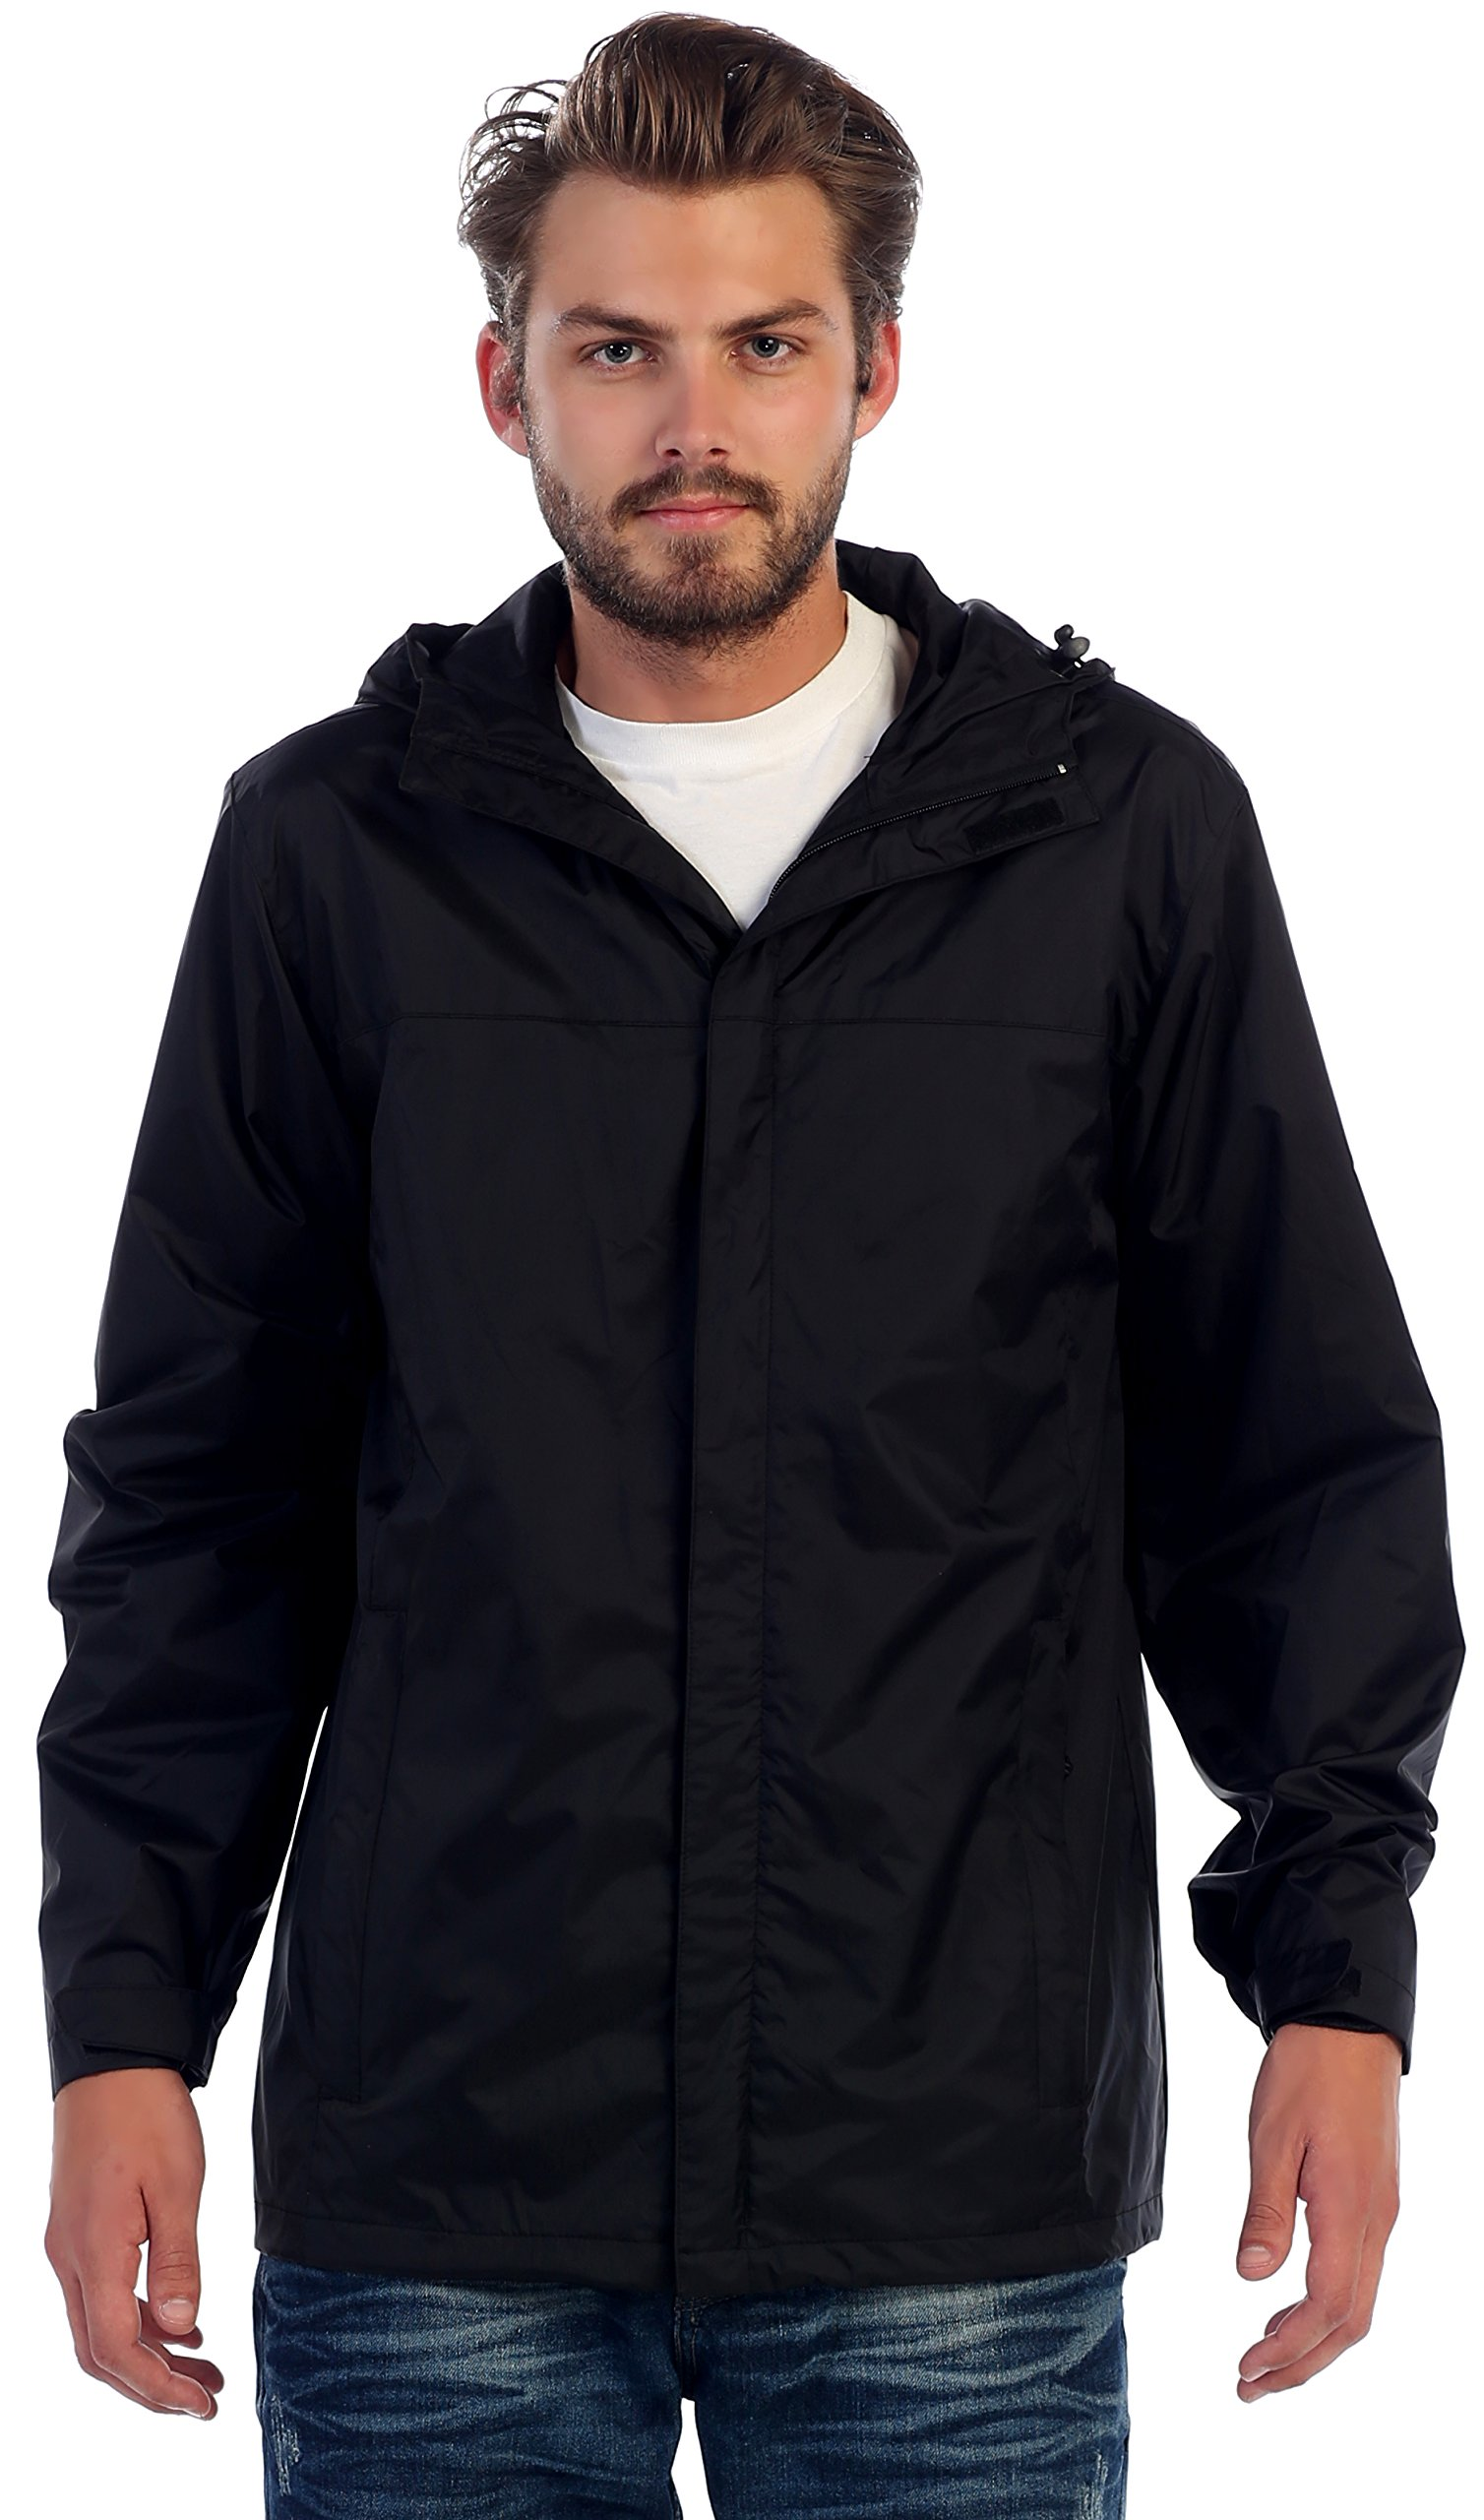 Gioberti Men's Waterproof Rain Jacket, Black, L by Gioberti